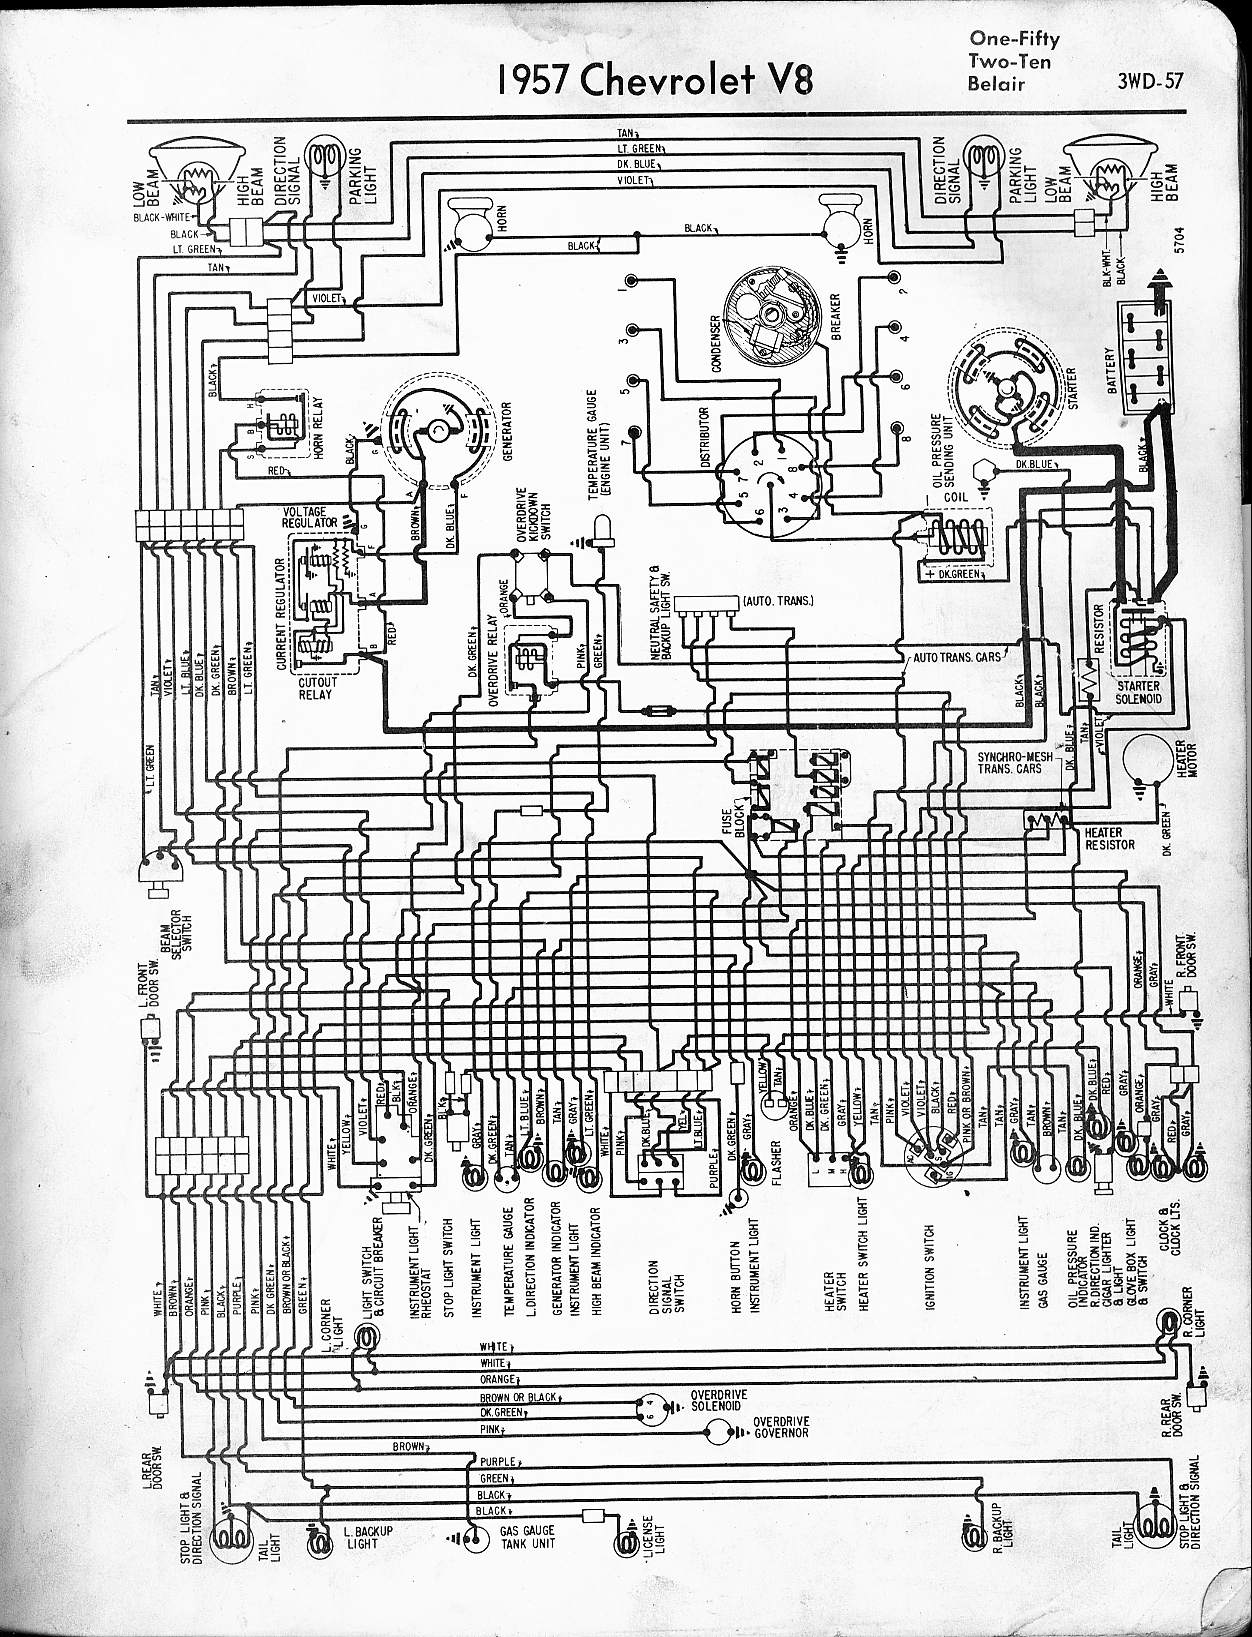 MWireChev57_3WD 057 57 65 chevy wiring diagrams 1957 chevy wiring diagram at mr168.co